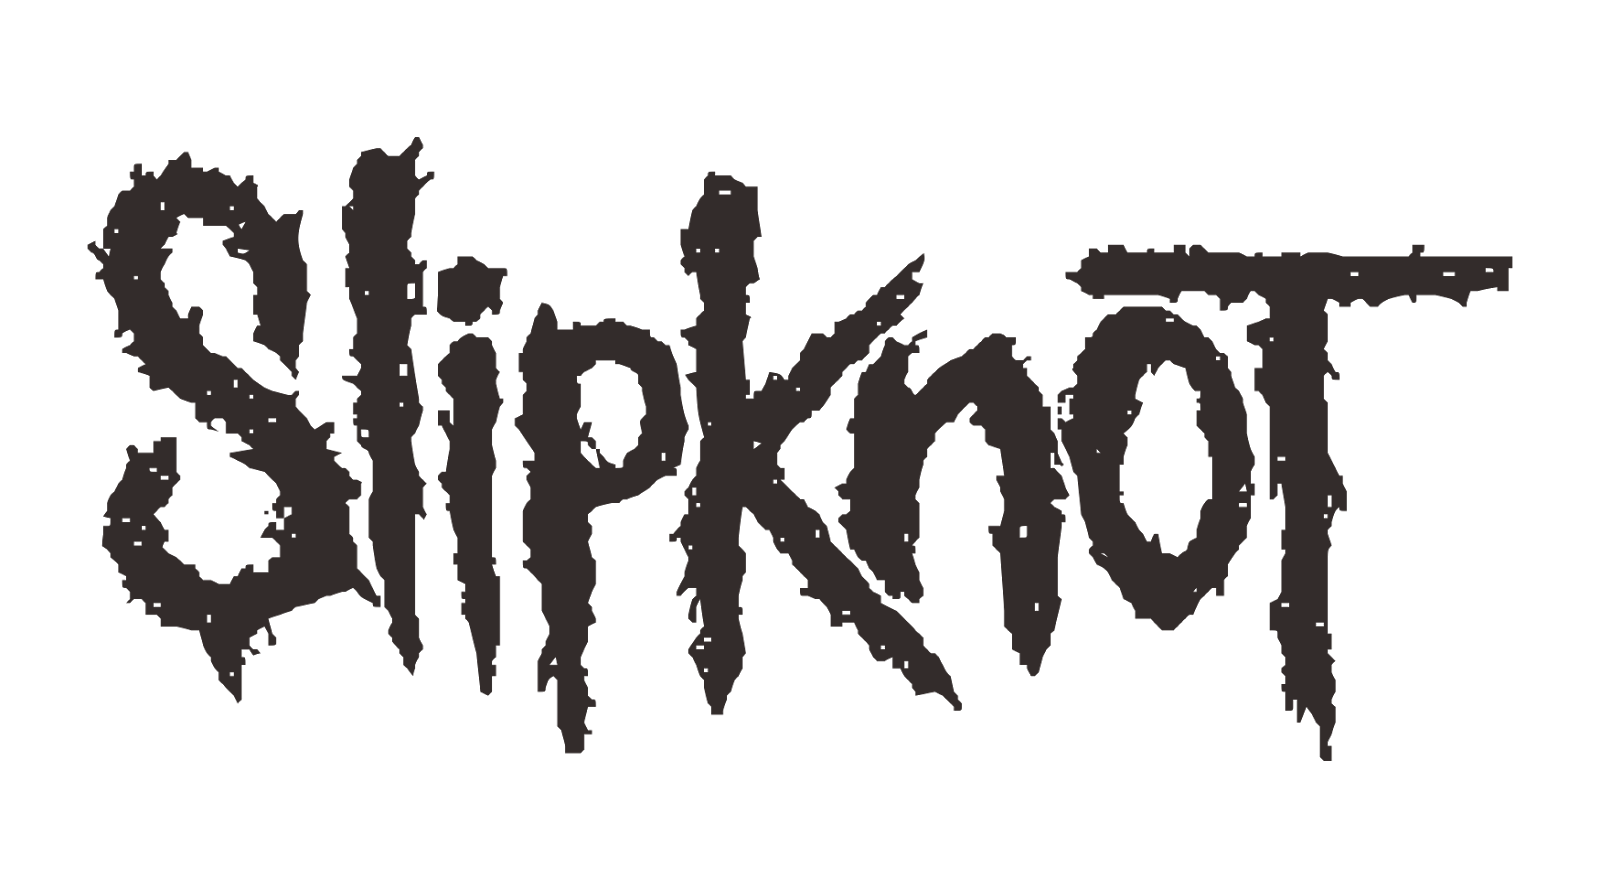 Slipknot logo slipknot symbol meaning history and evolution slipknot logo biocorpaavc Choice Image